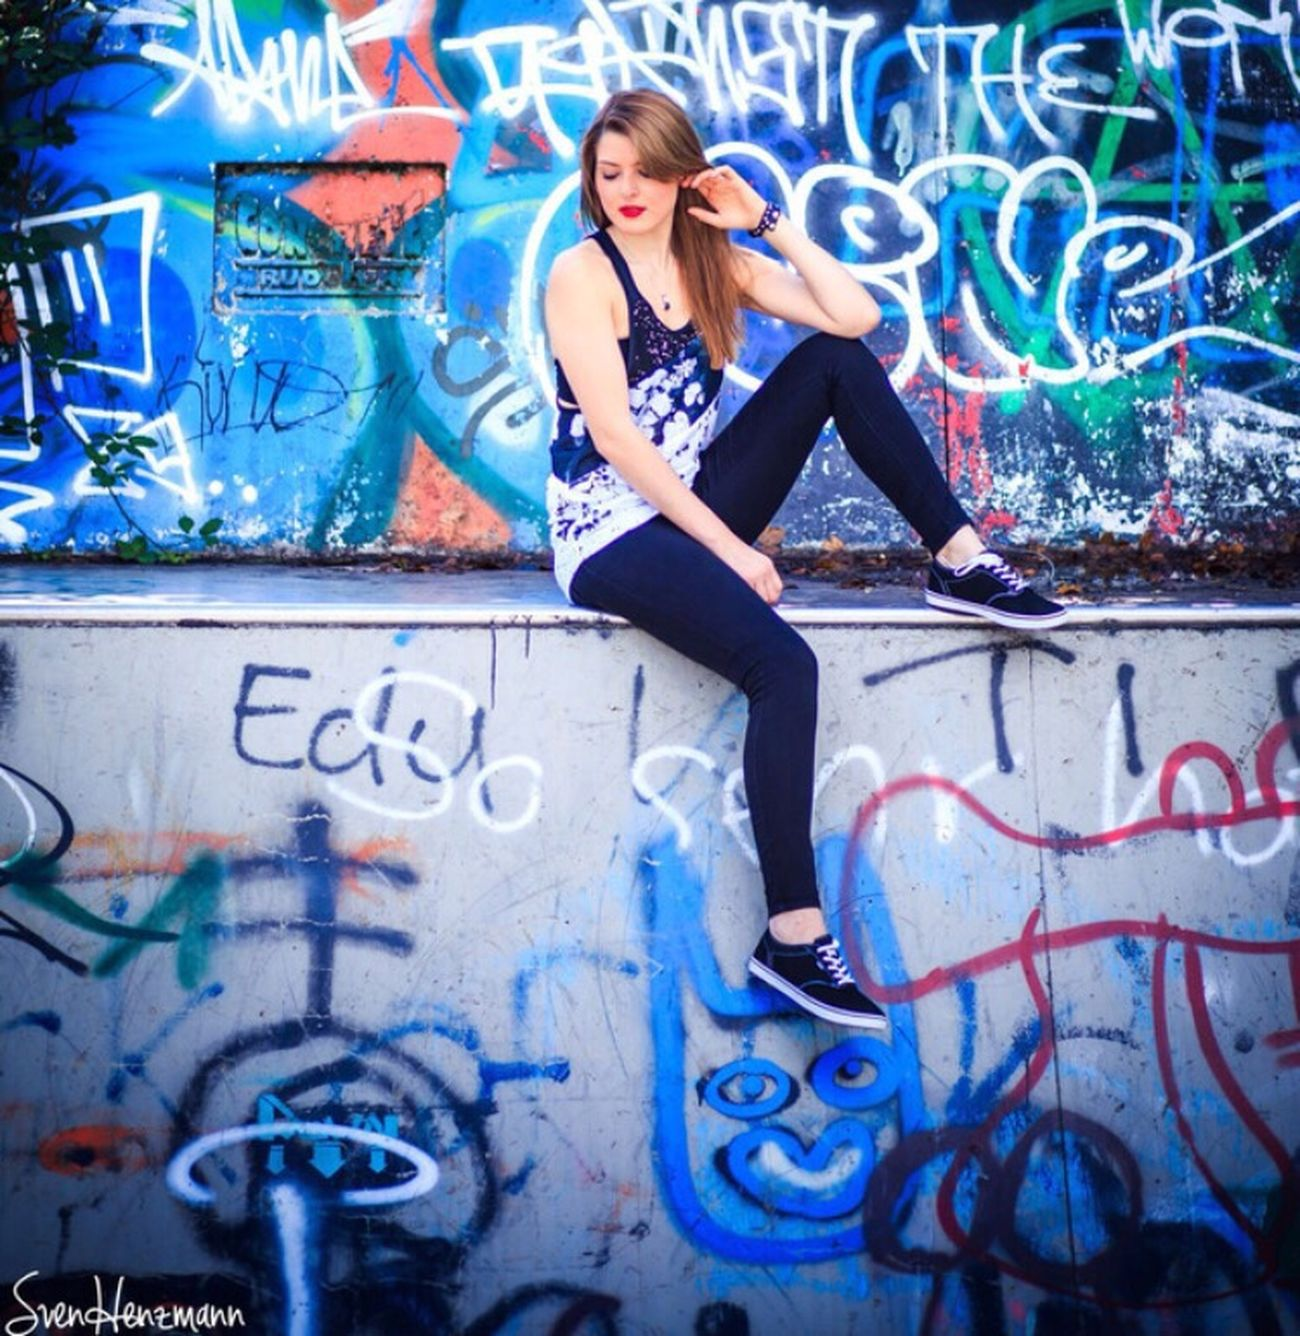 Outdoor Fotograf Fotoshooting Graffiti Skatepark Me Girl Chilling Chill Sommer Lässig Redlips Outfit Photooftheday Me #girl #blond #lovely Zufrieden